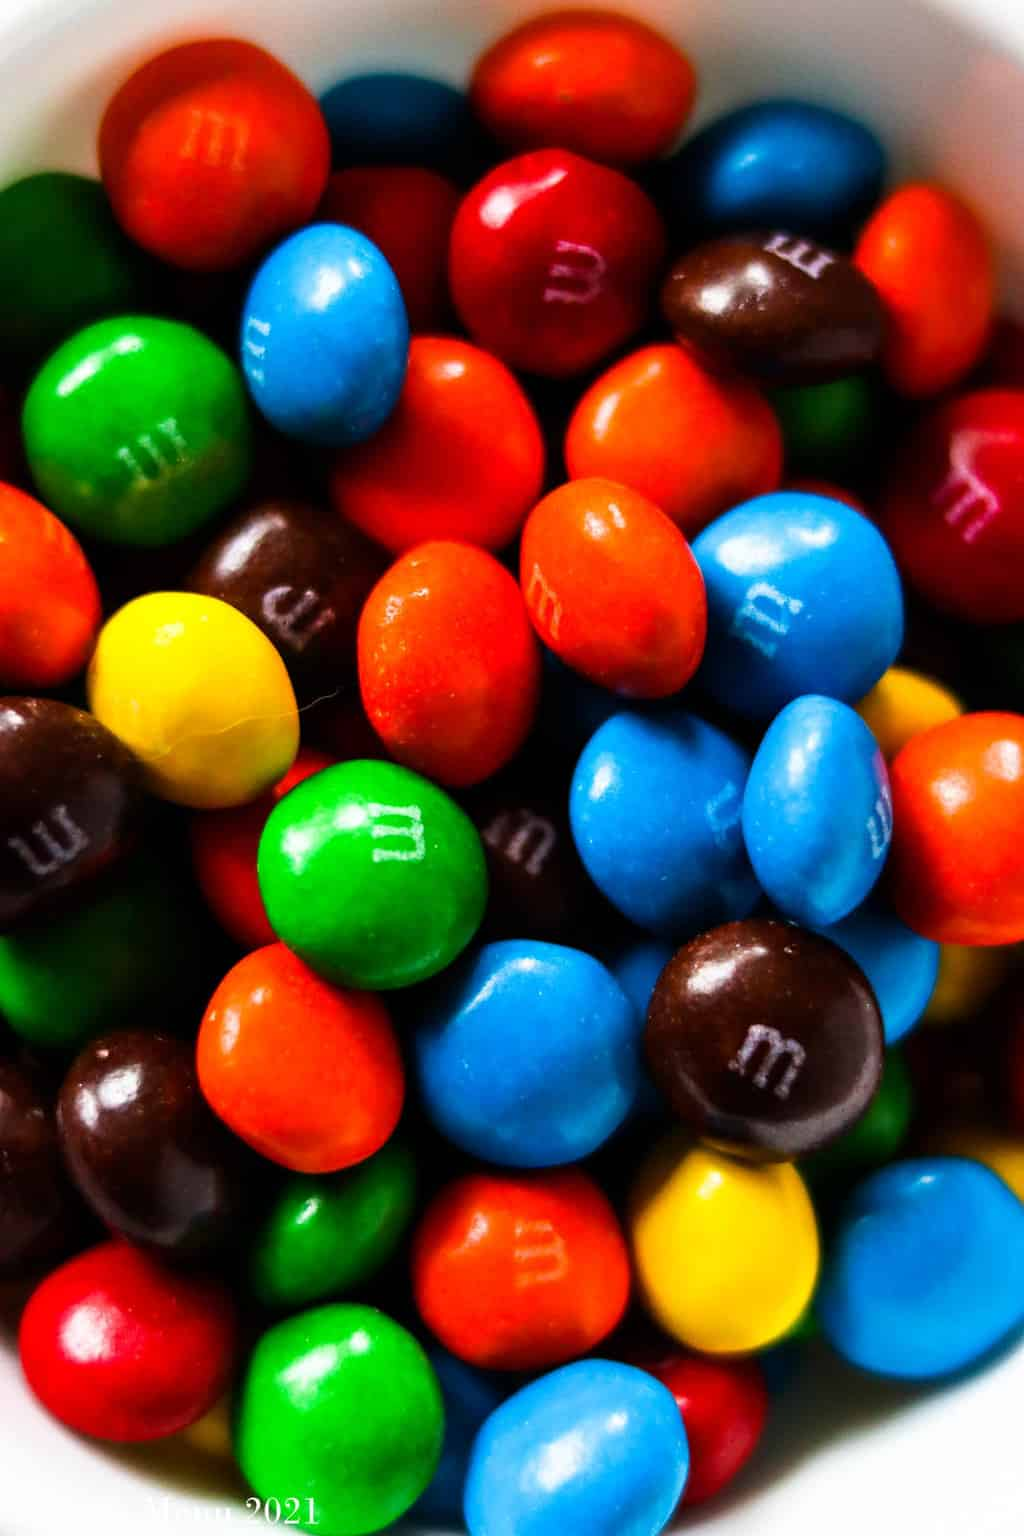 An up-close shot of a dish of peanut butter M&Ms